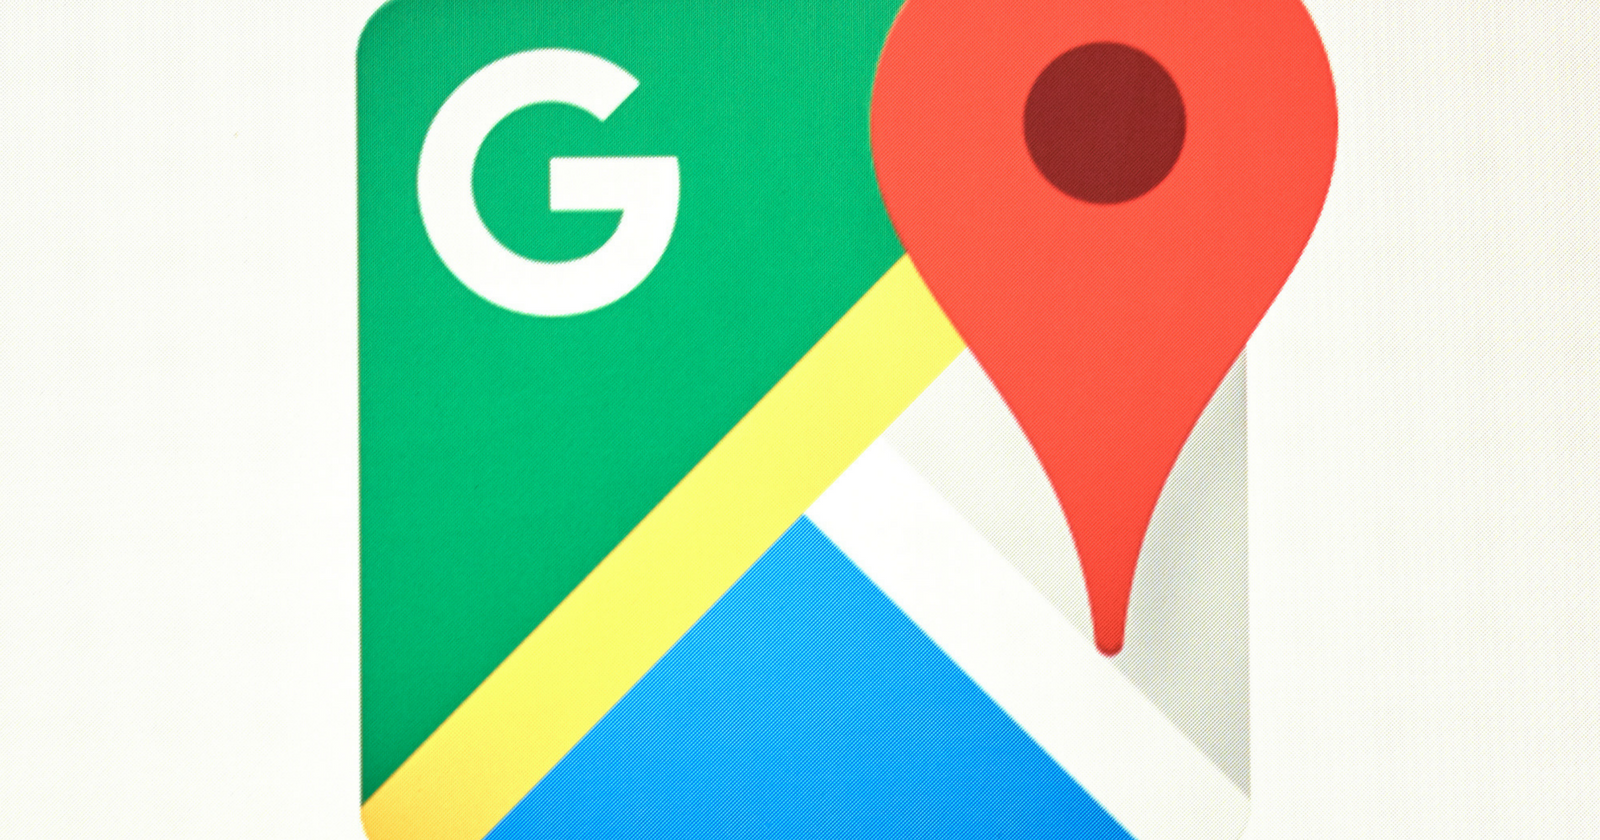 https://www.searchenginejournal.com/google-continues-crack-fake-google-maps-listings/193873/